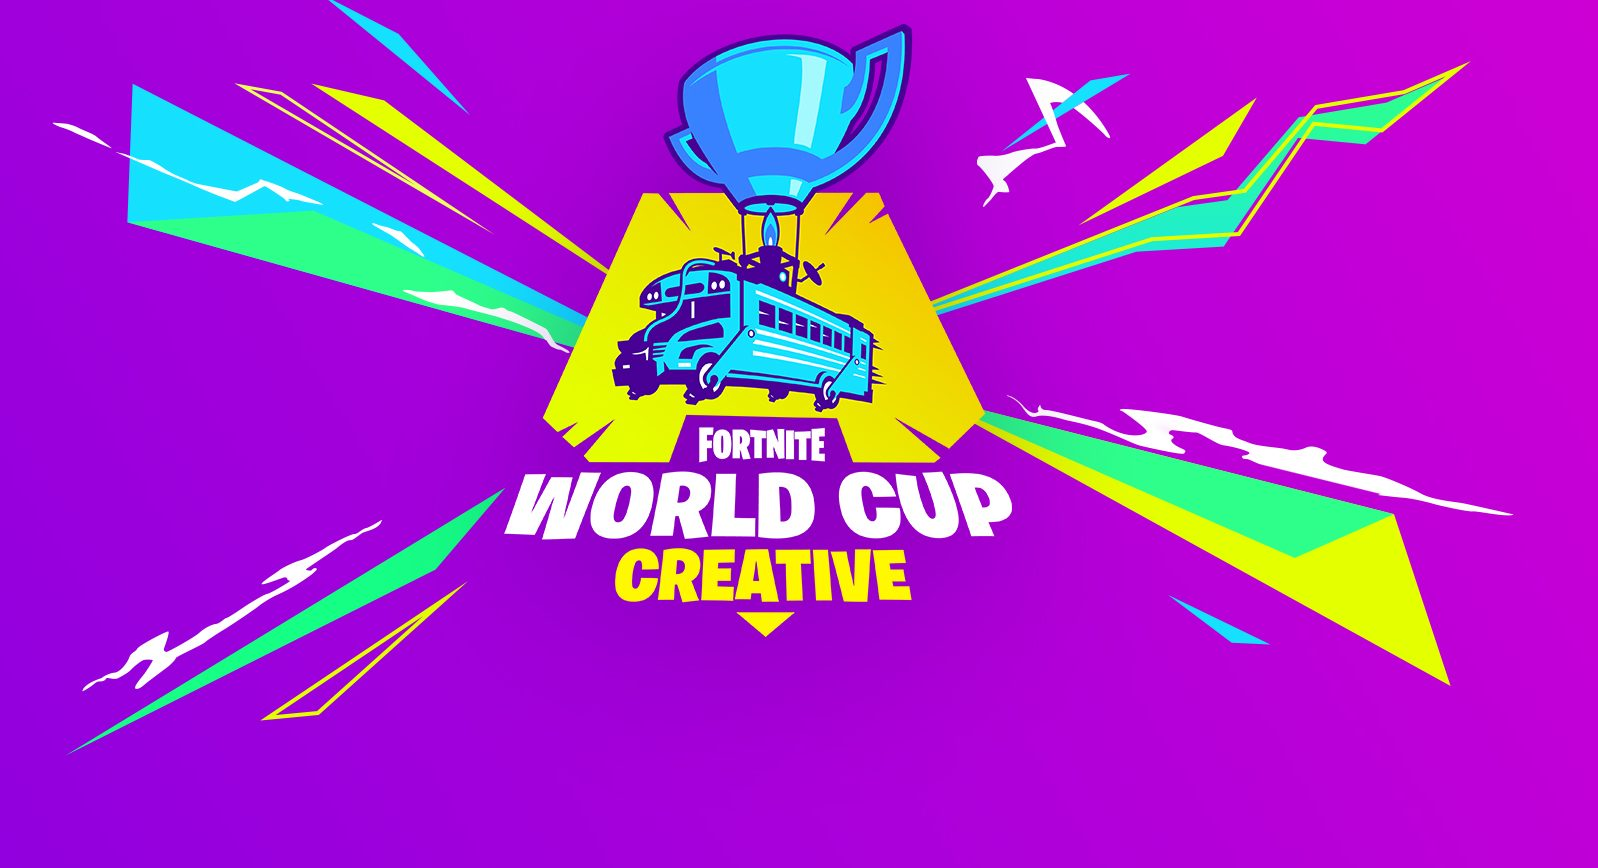 Fortnite World Cup Creative to feature $3 million prize pool